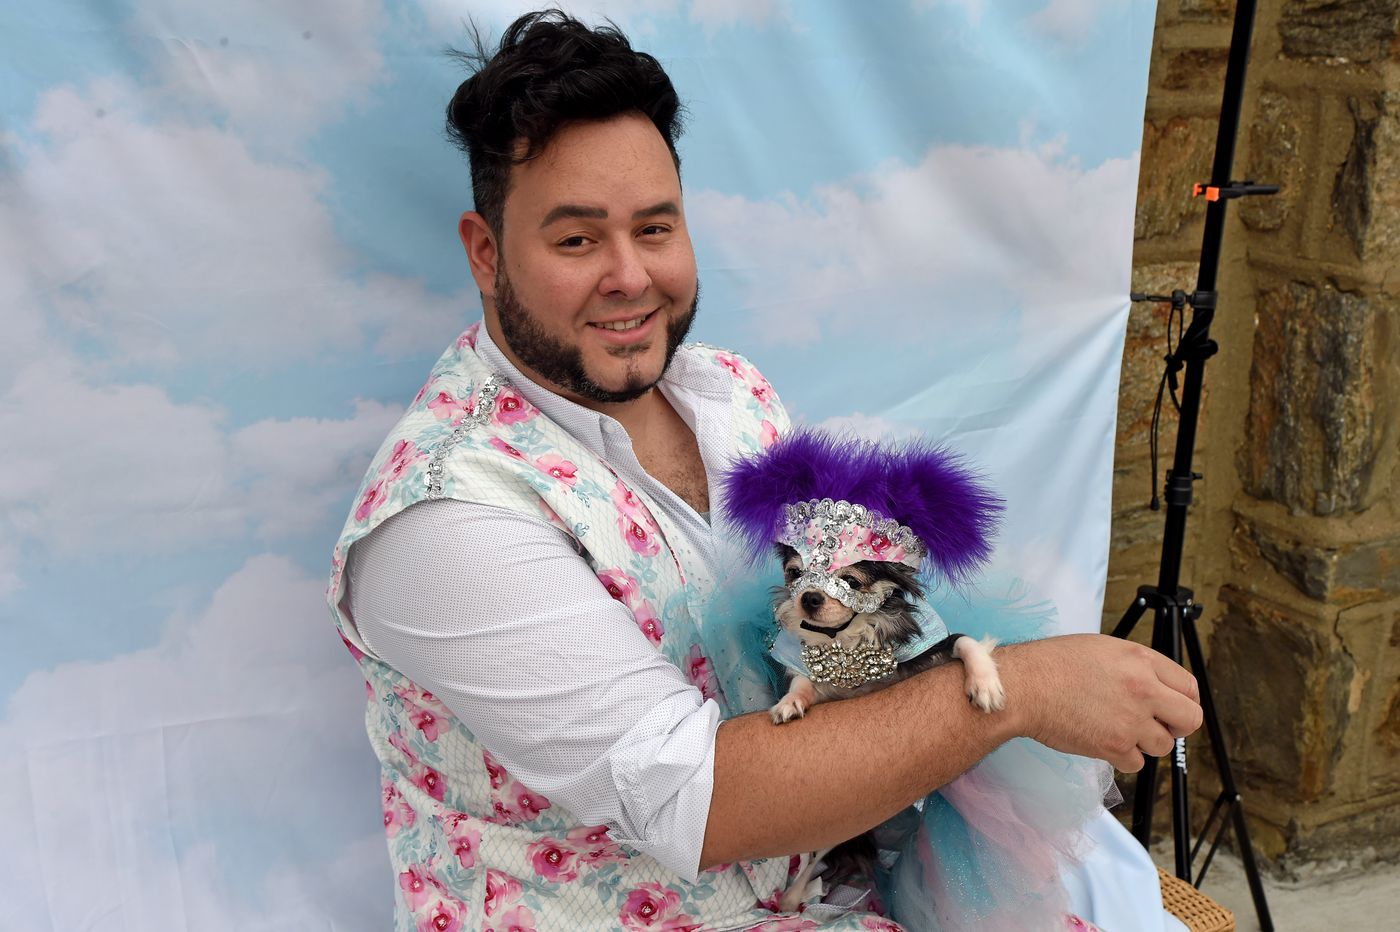 This Philly pet fashion designer is a fur dad to five Chihuahuas | We The People